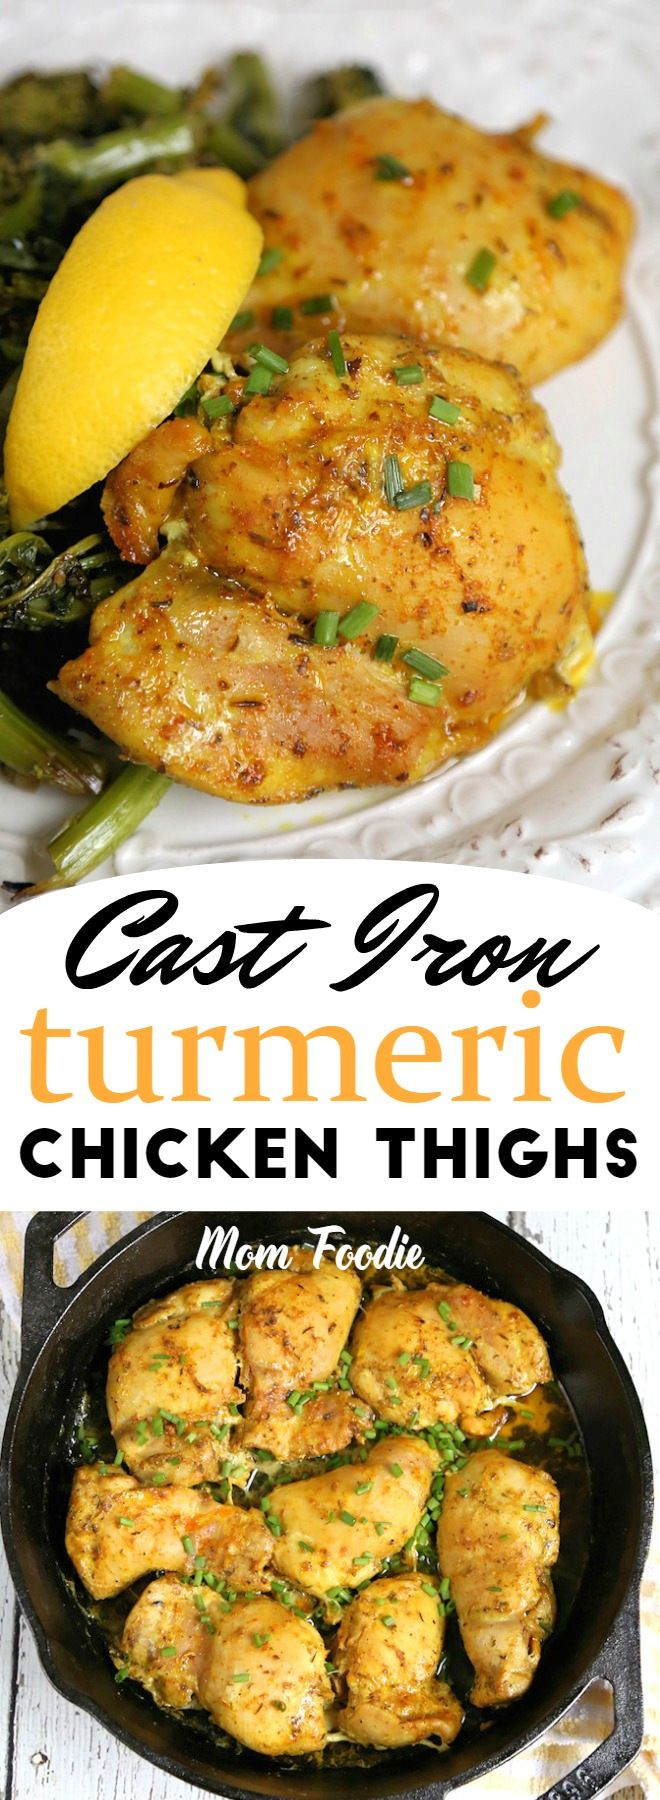 Cast Iron Chicken Thighs … sounds like poultry that has been working out…. but seriously this Baked Turmeric Chicken Thighs Recipe is easy to make and healthy too! I had it with a simple side of sauteed broccoli rabe, for a great keto meal.